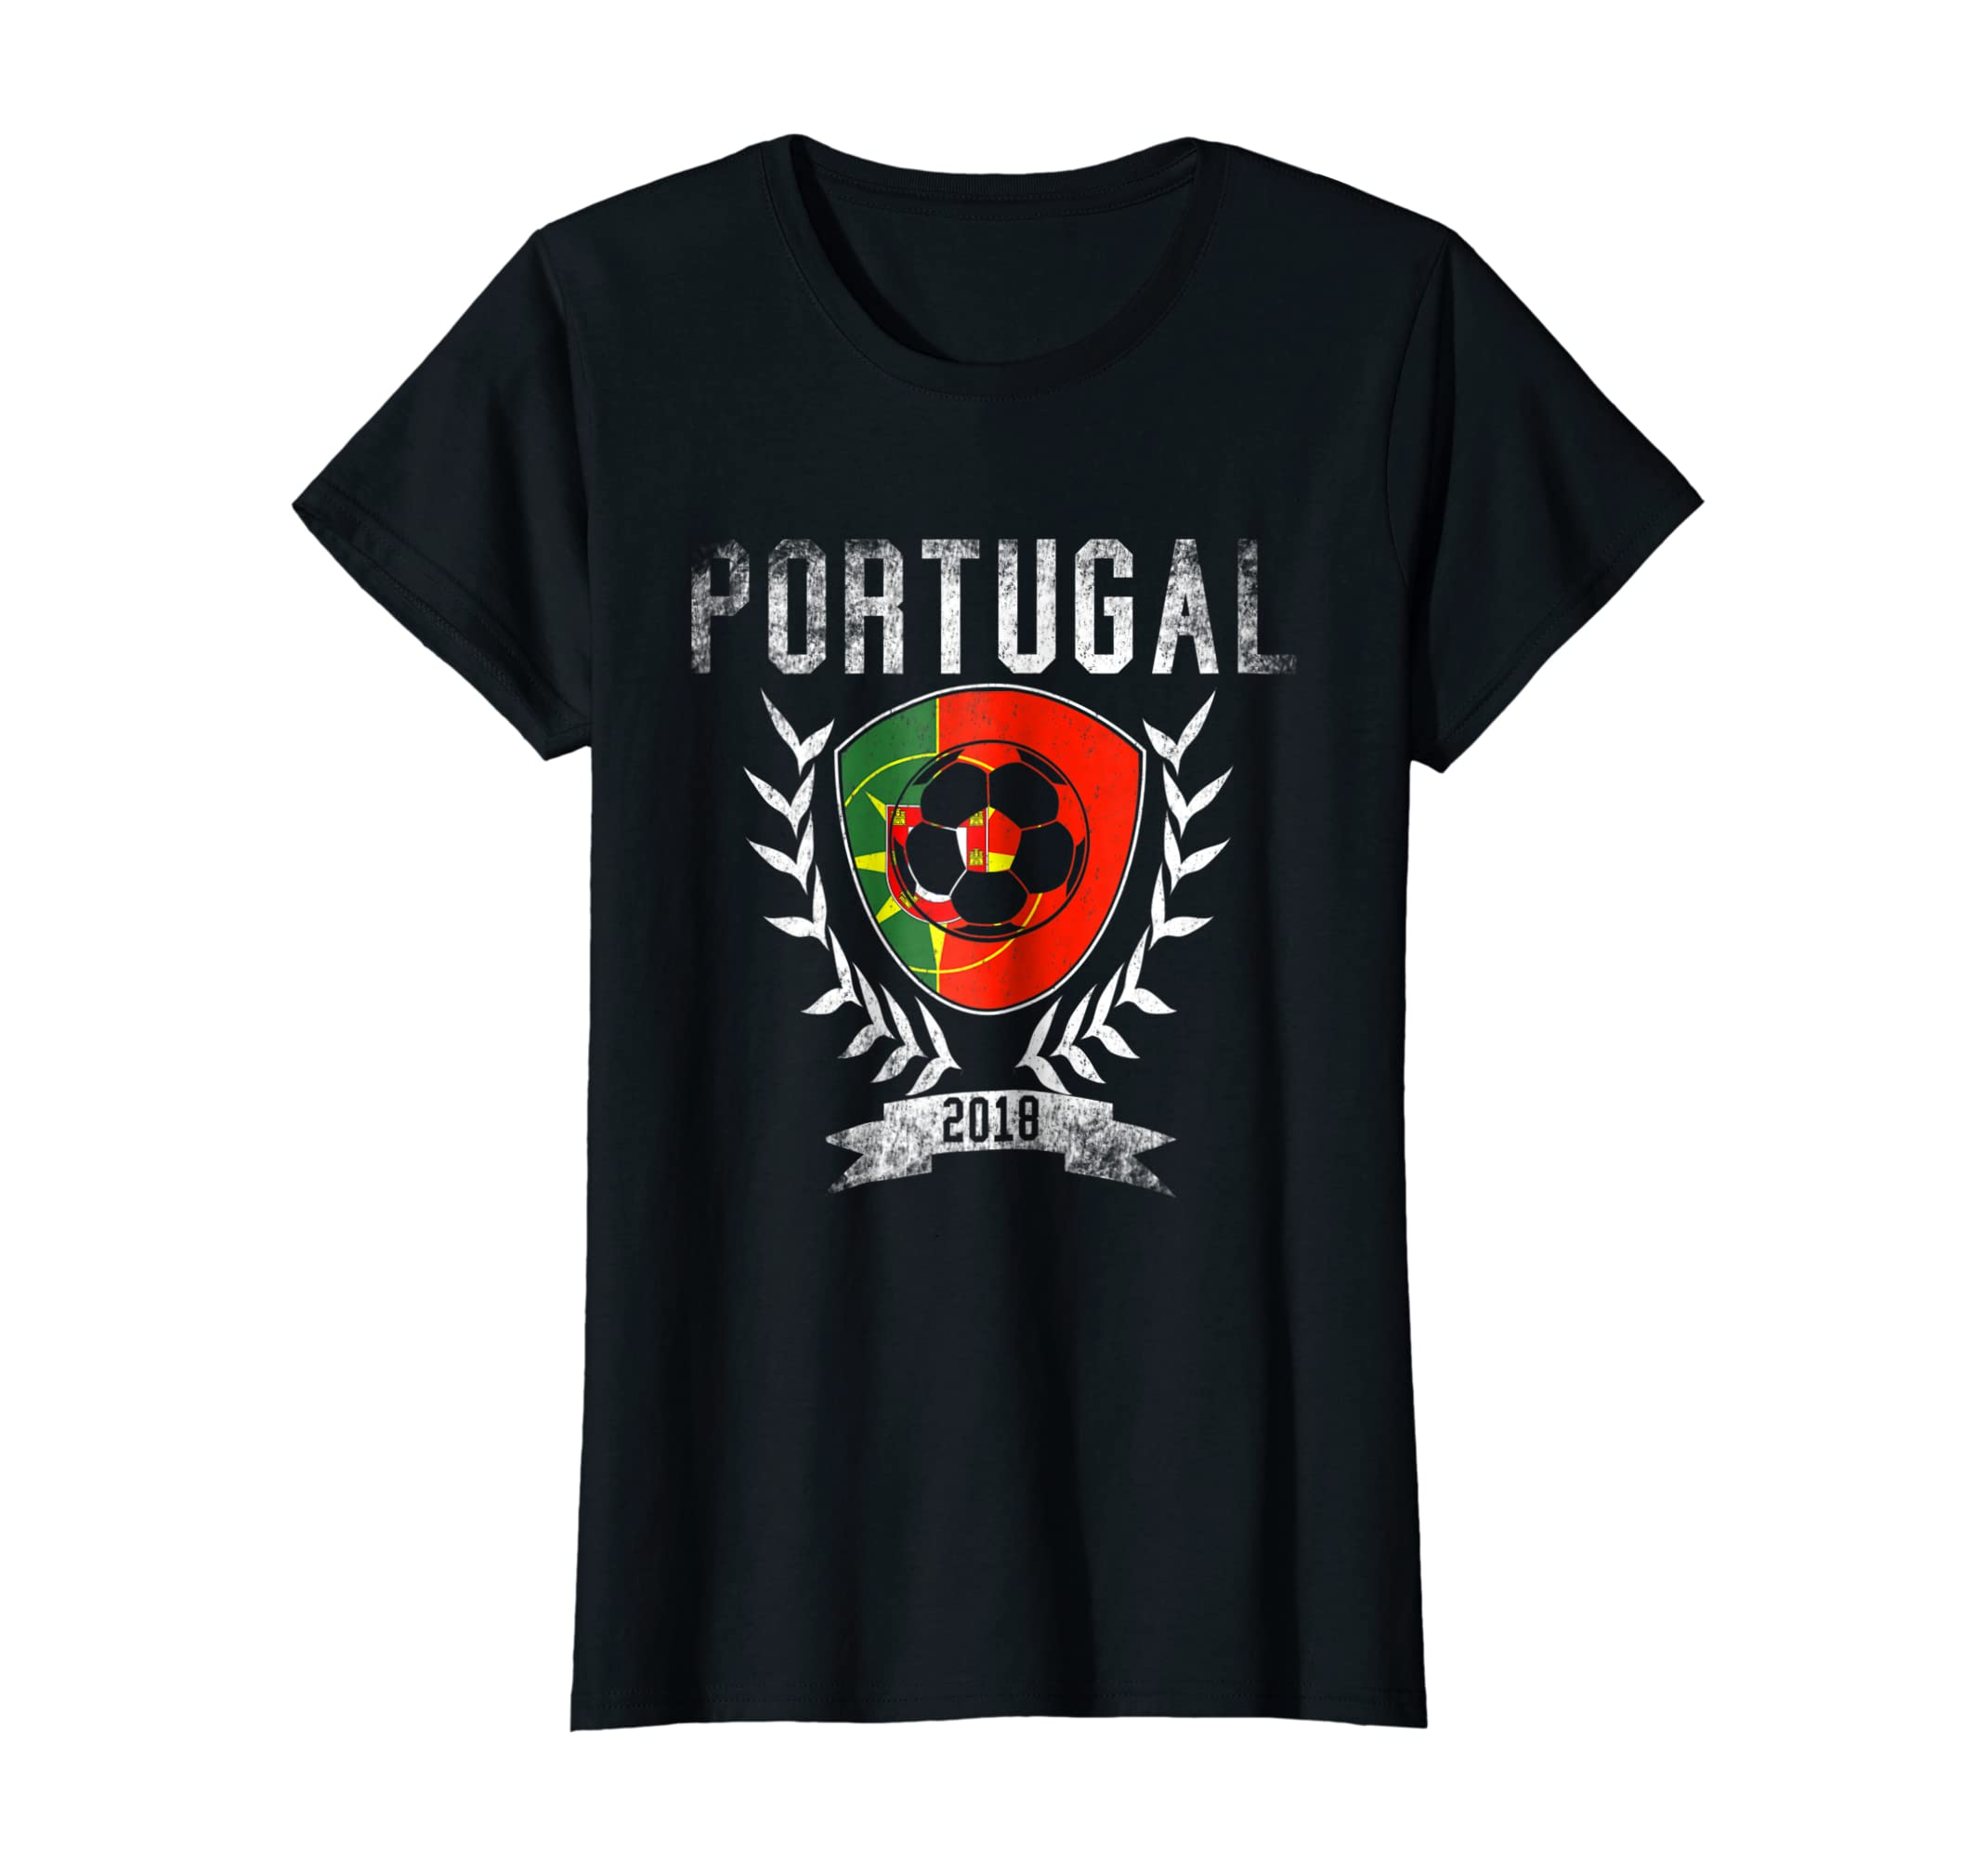 54e33ce8bd7c5 Amazon.com  Portuguese Football Cup 2018 T-Shirt - Portugal Soccer Tee   Clothing